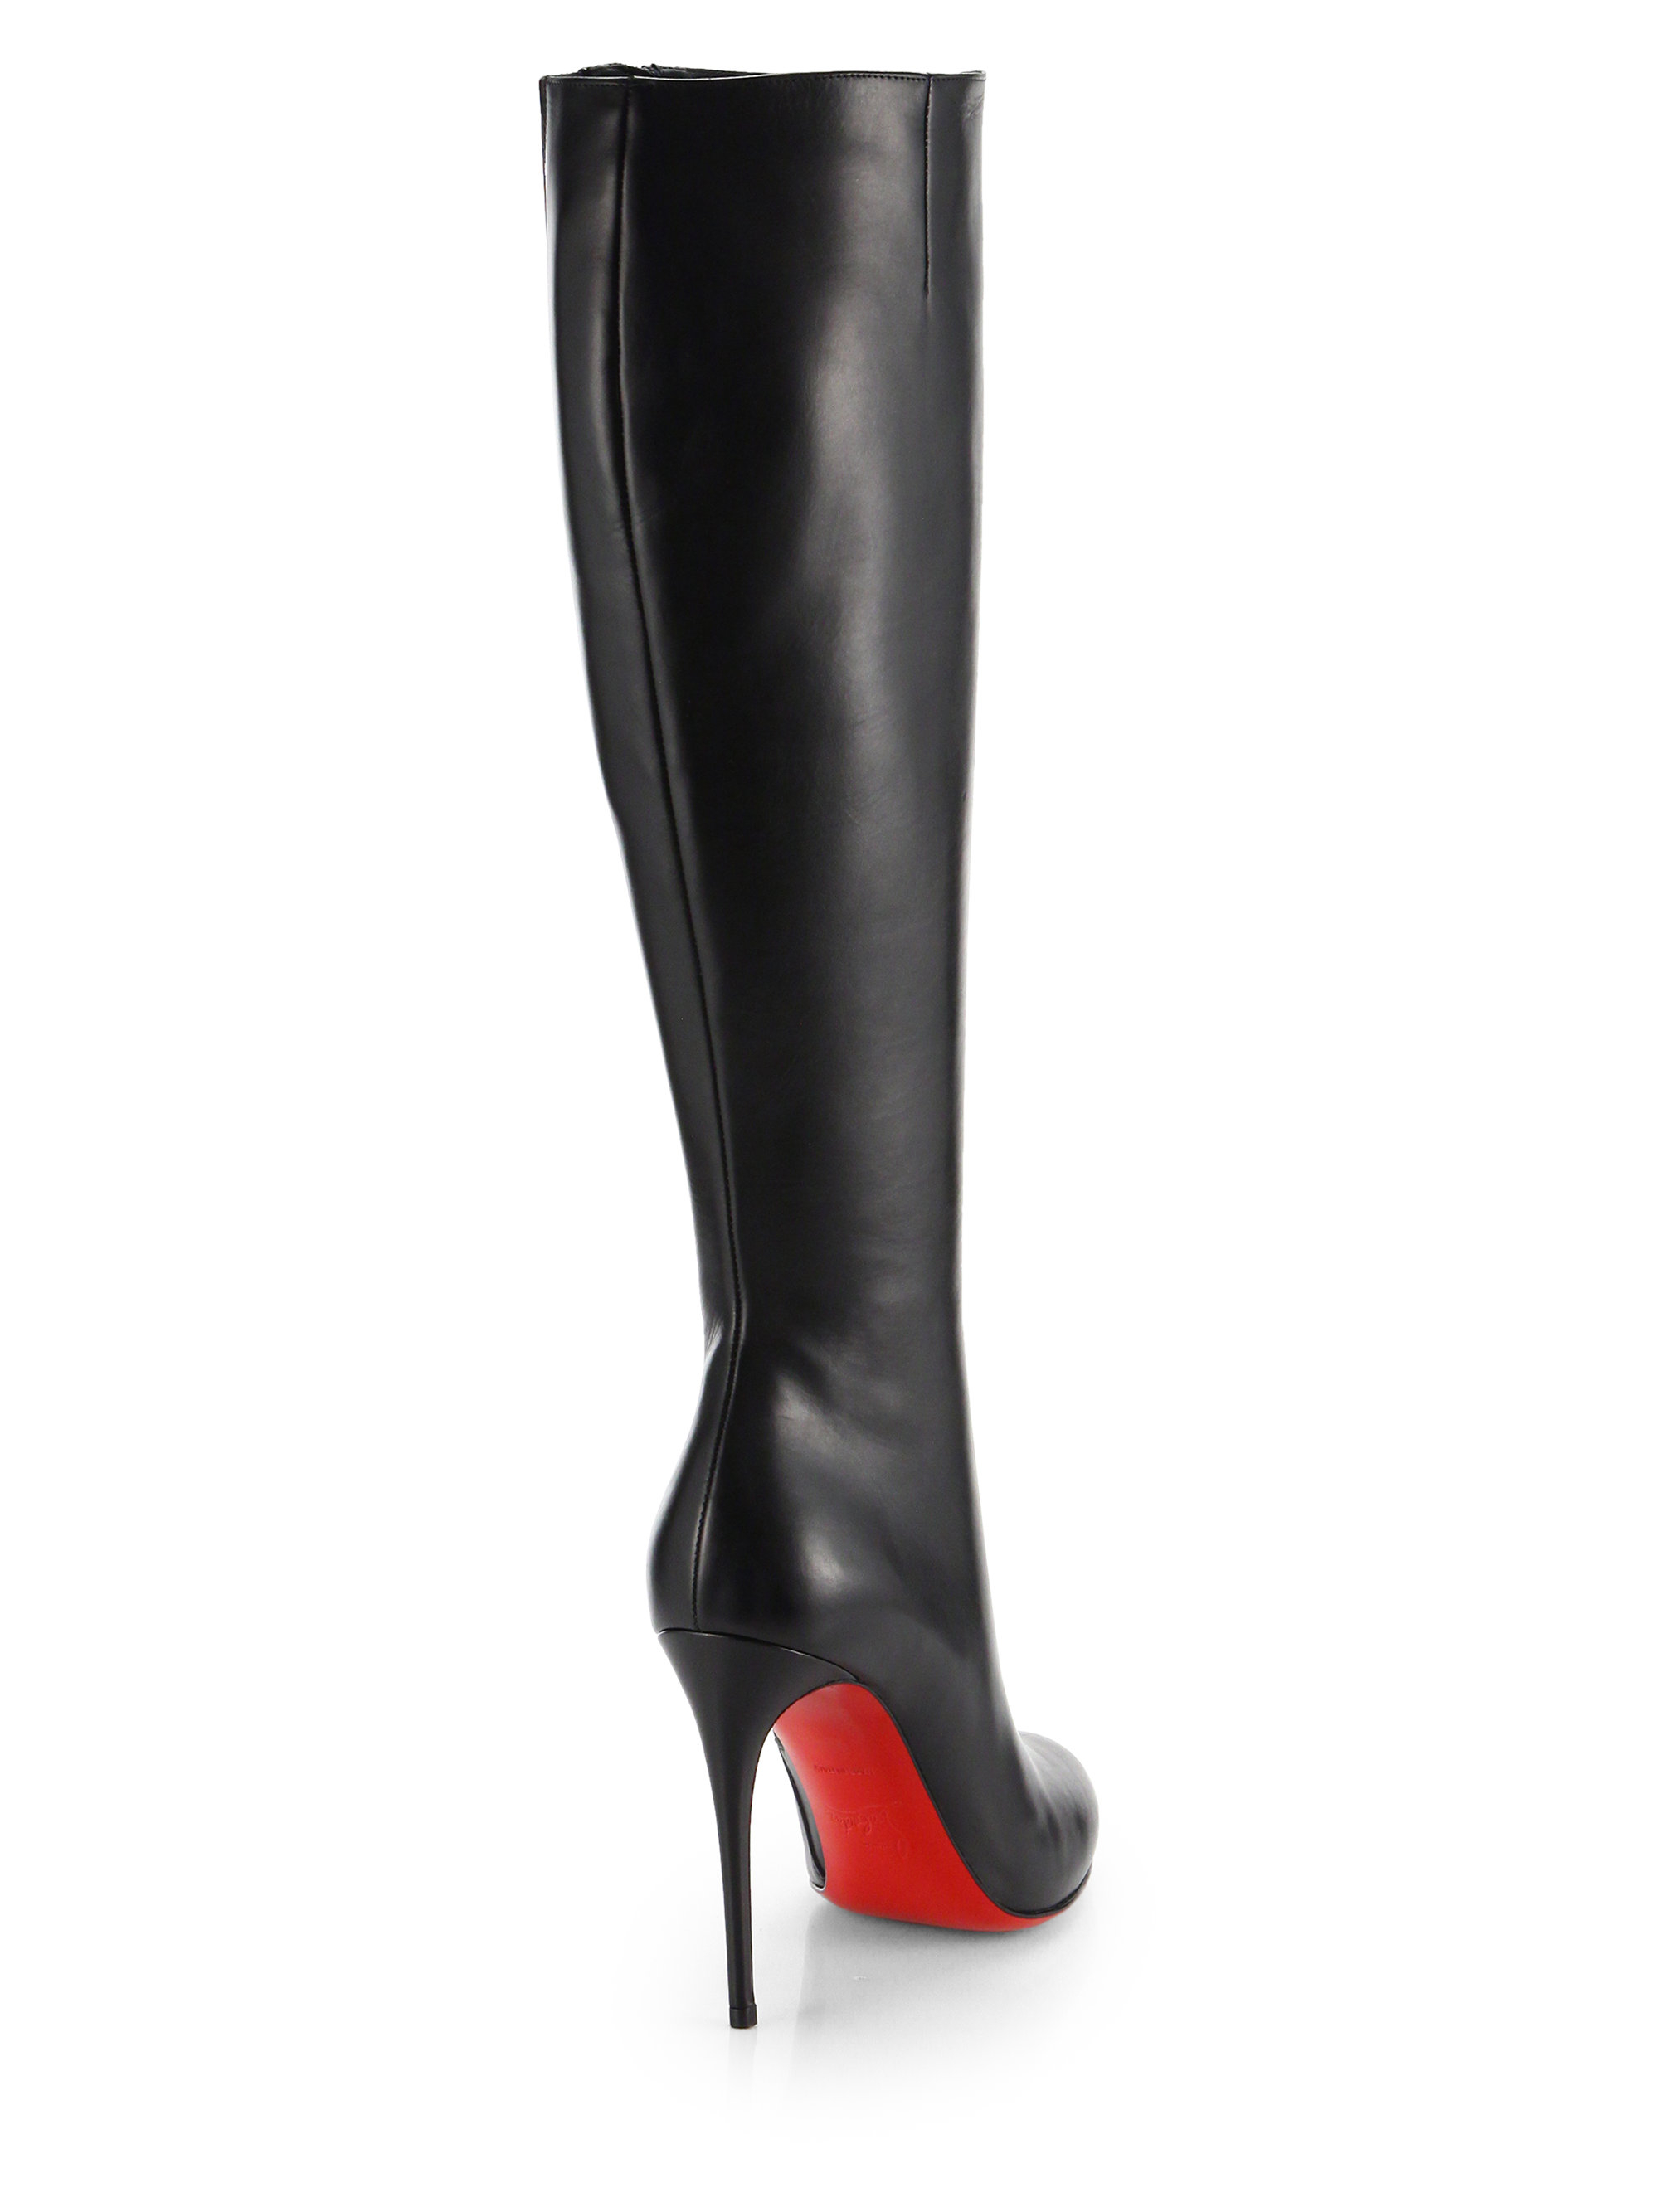 christian louboutin fifi botta leather knee-high boots